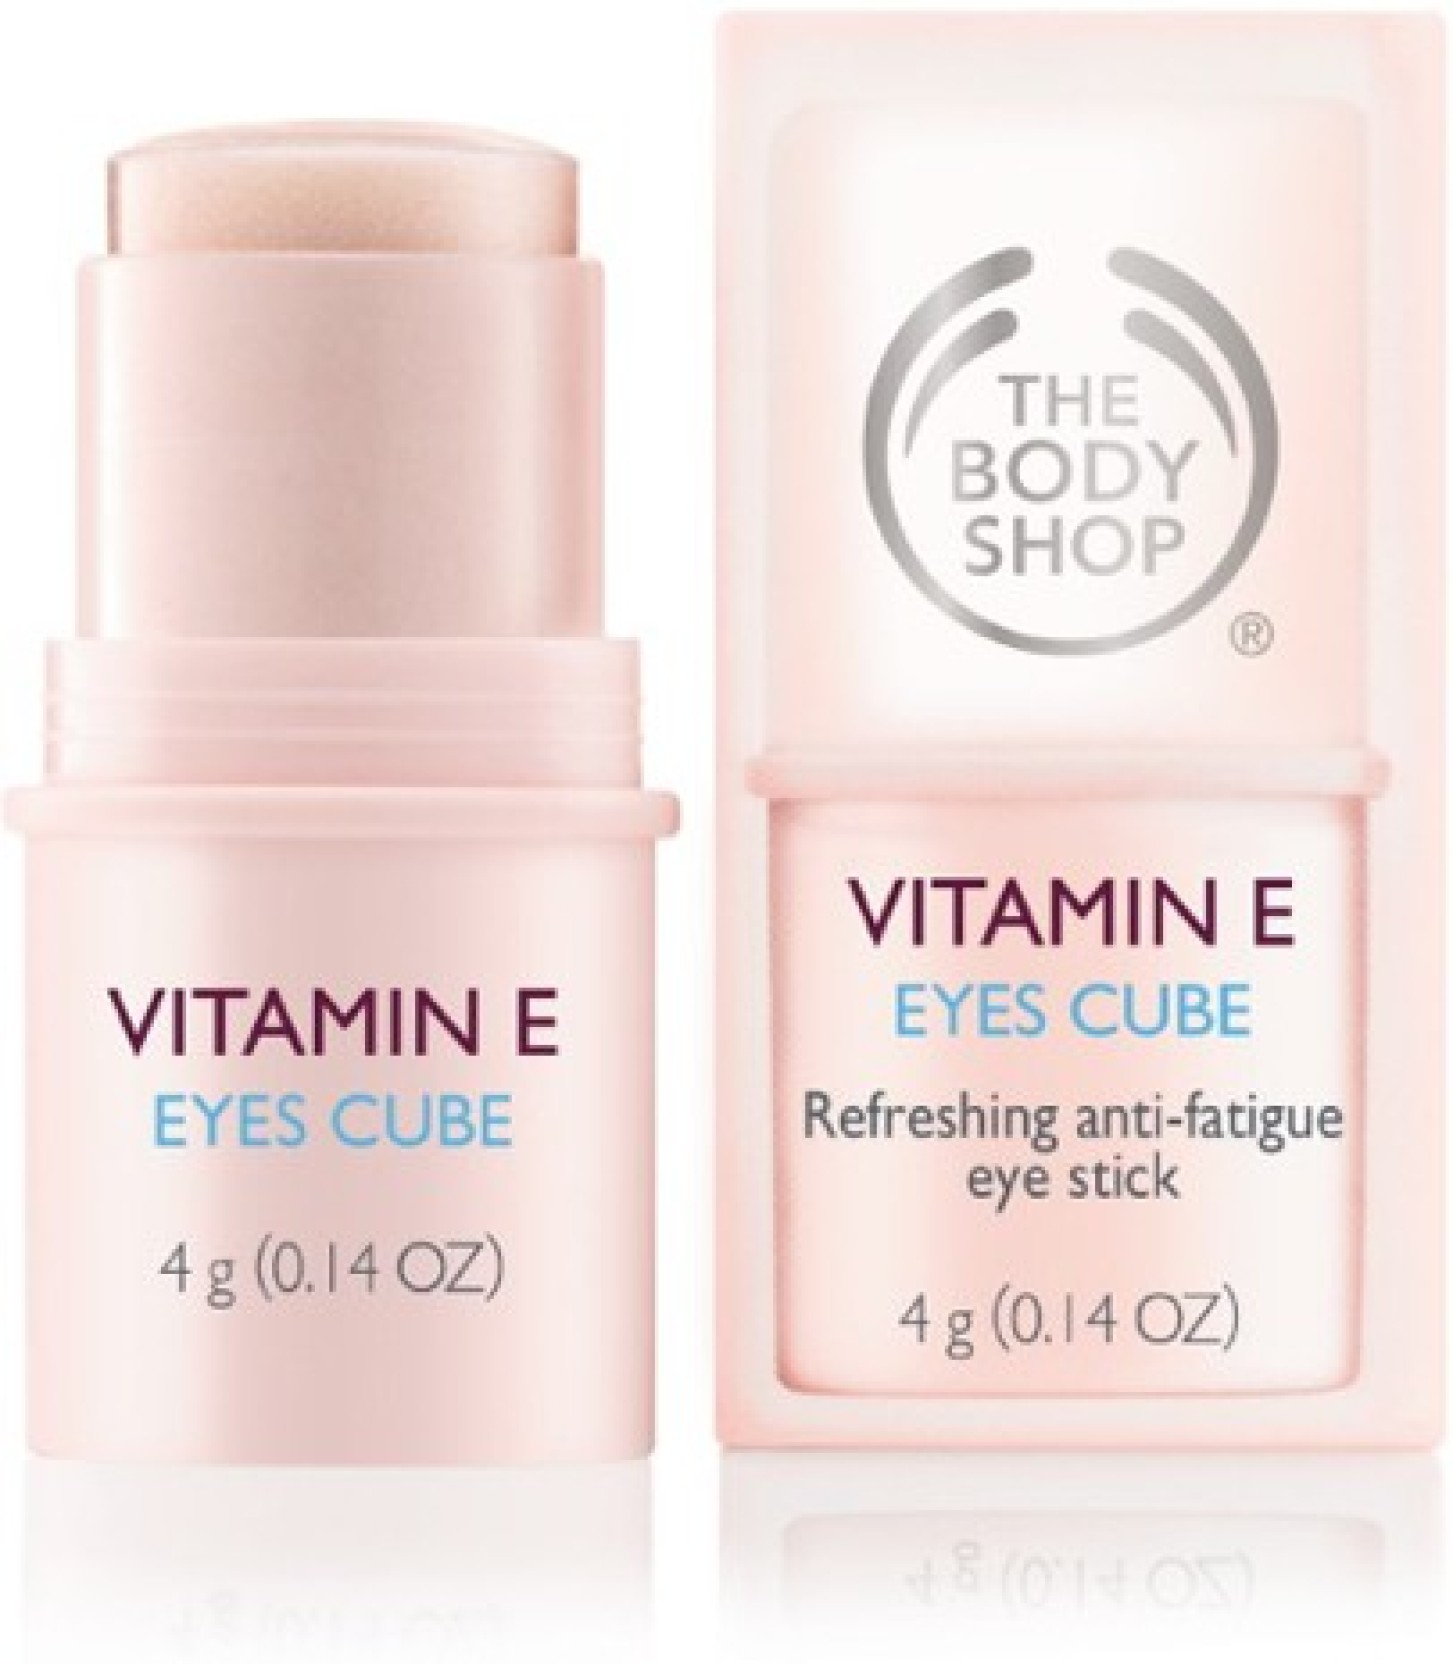 The Body Shop Vitamine E Eyes Cube (4 g)